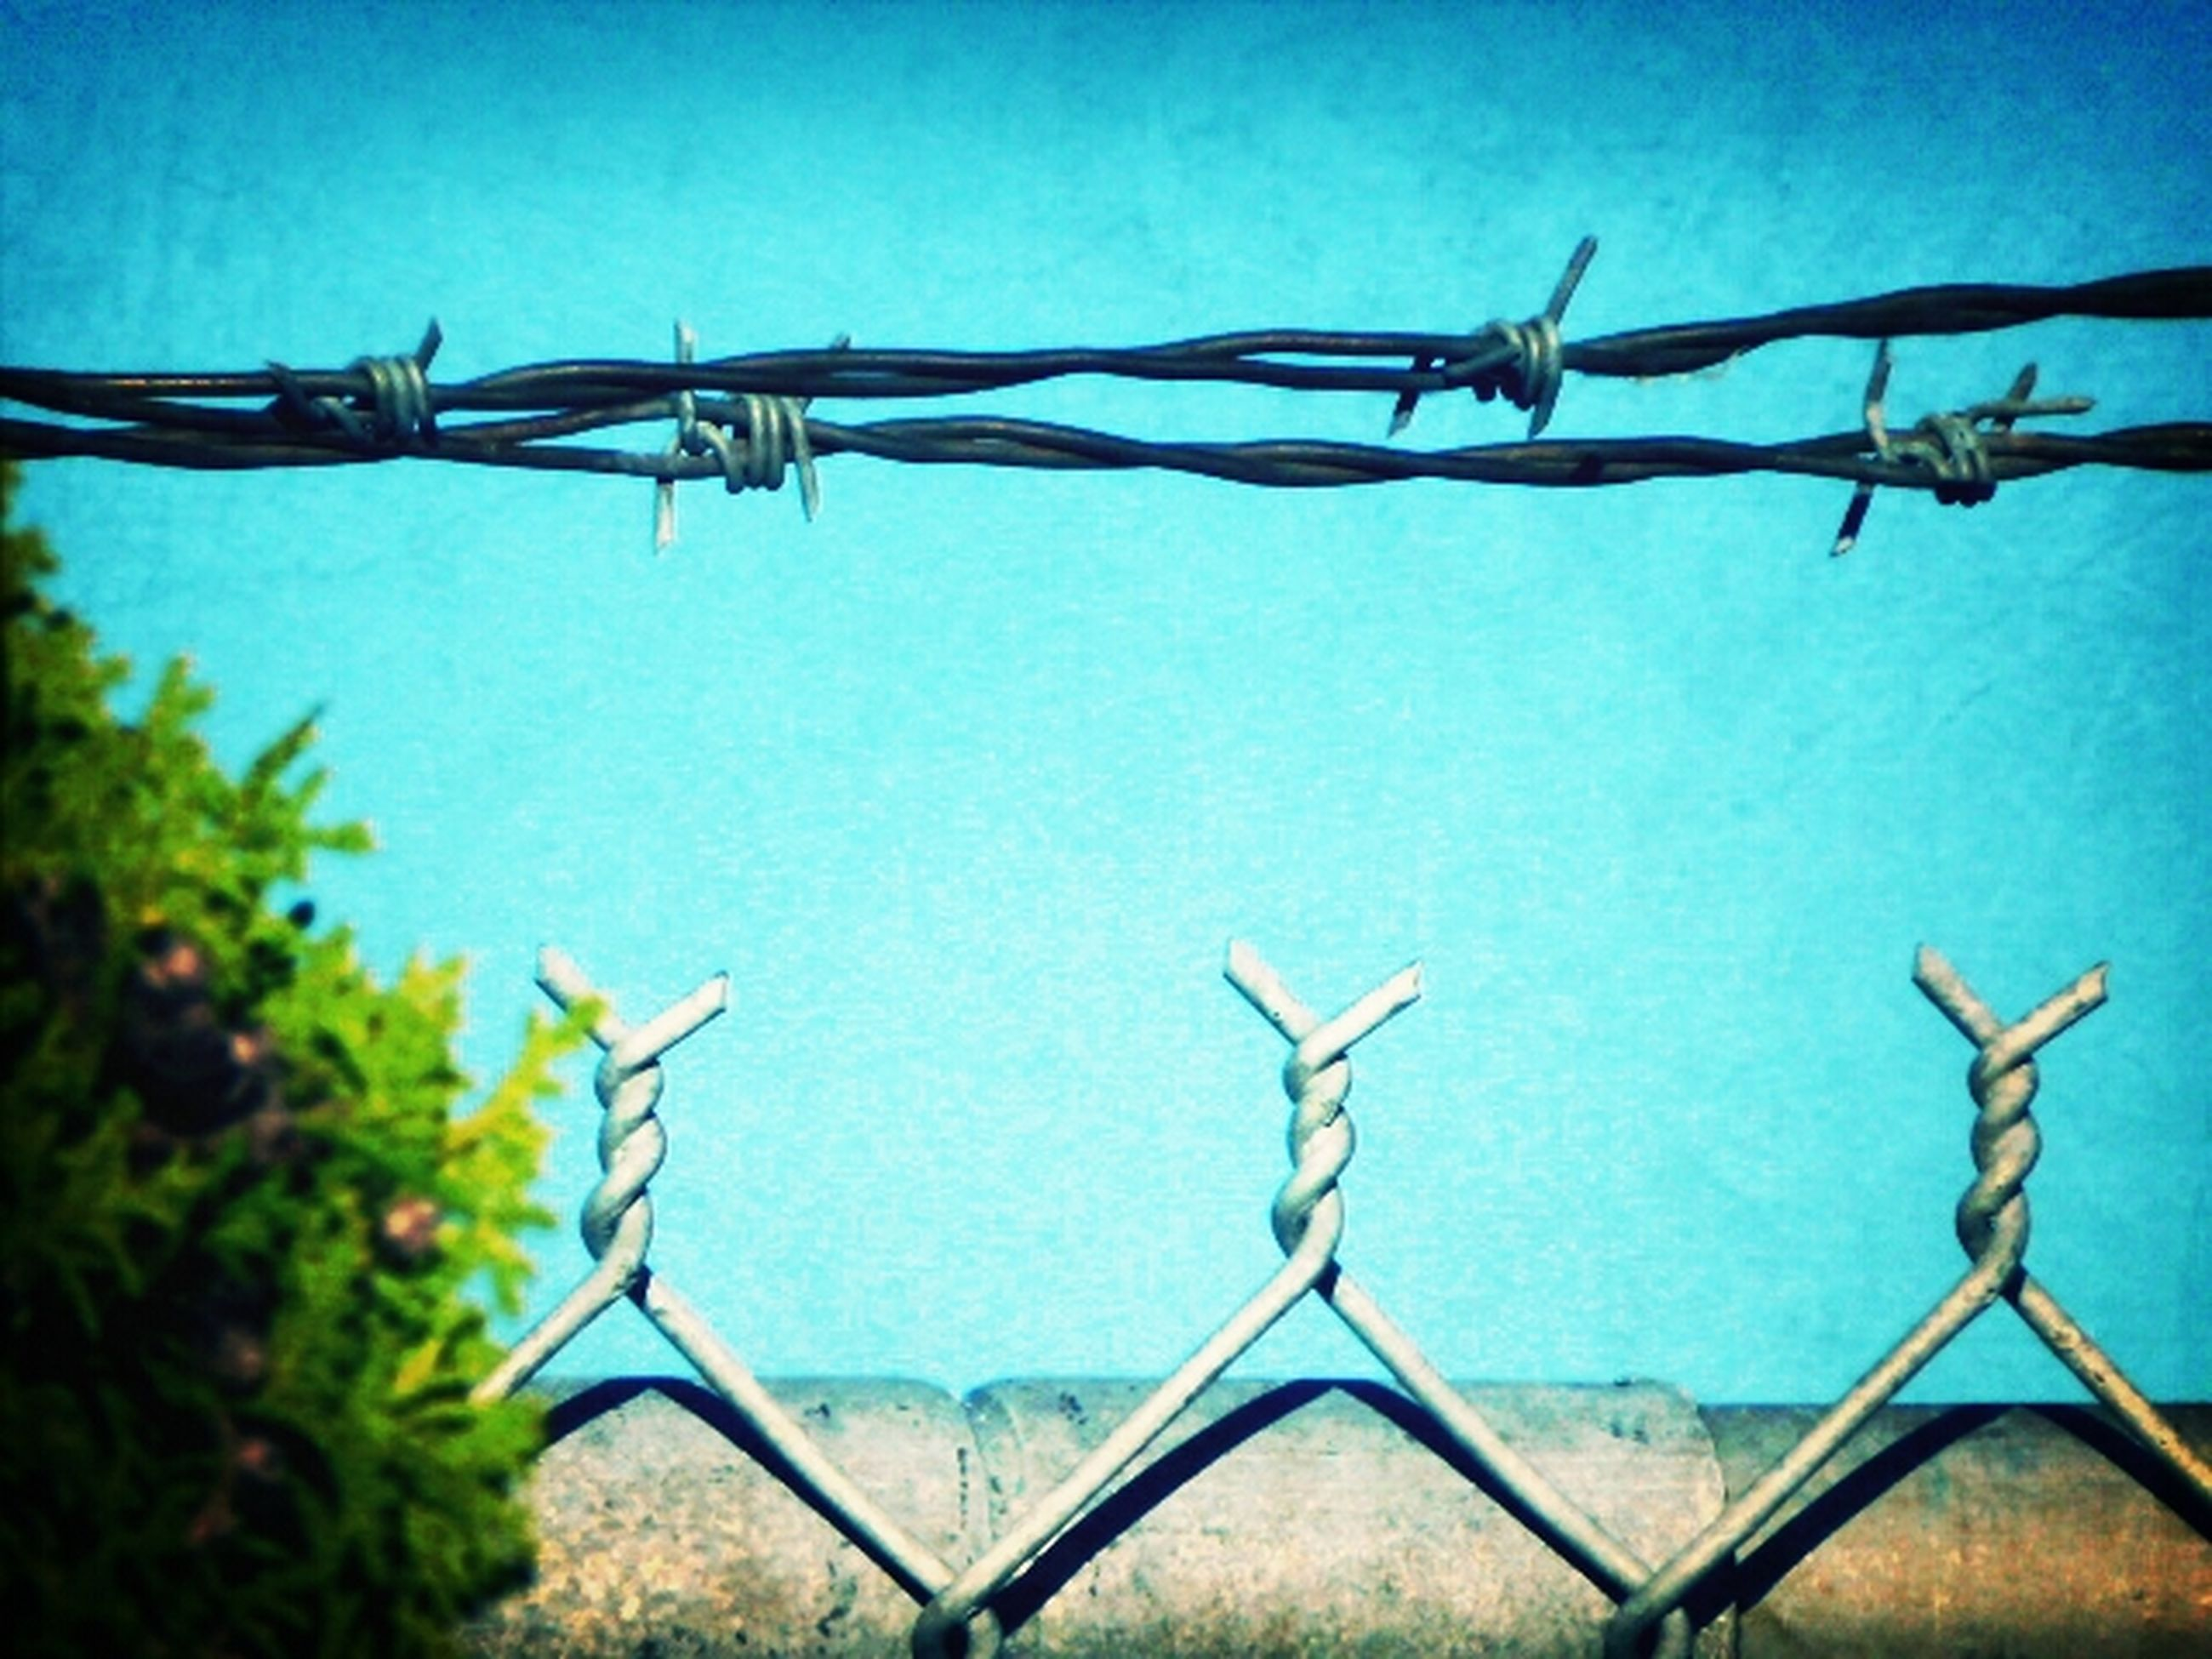 protection, clear sky, safety, fence, security, blue, barbed wire, built structure, metal, architecture, low angle view, chainlink fence, day, rope, outdoors, no people, building exterior, sky, sunlight, close-up